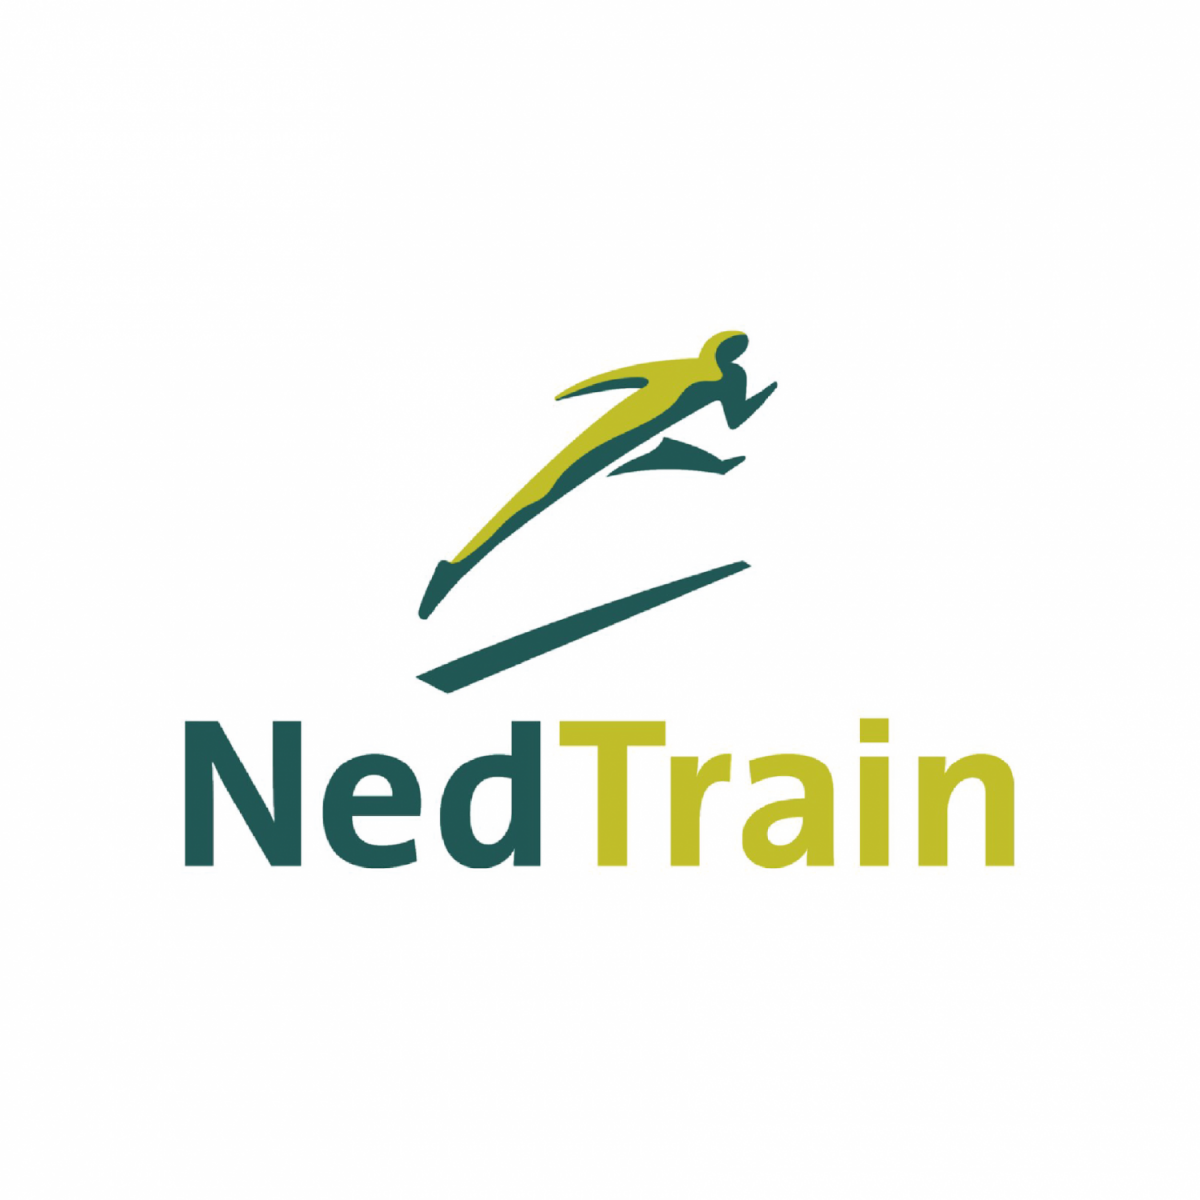 Referenz NedTrain data e1540990907377 Homepagina